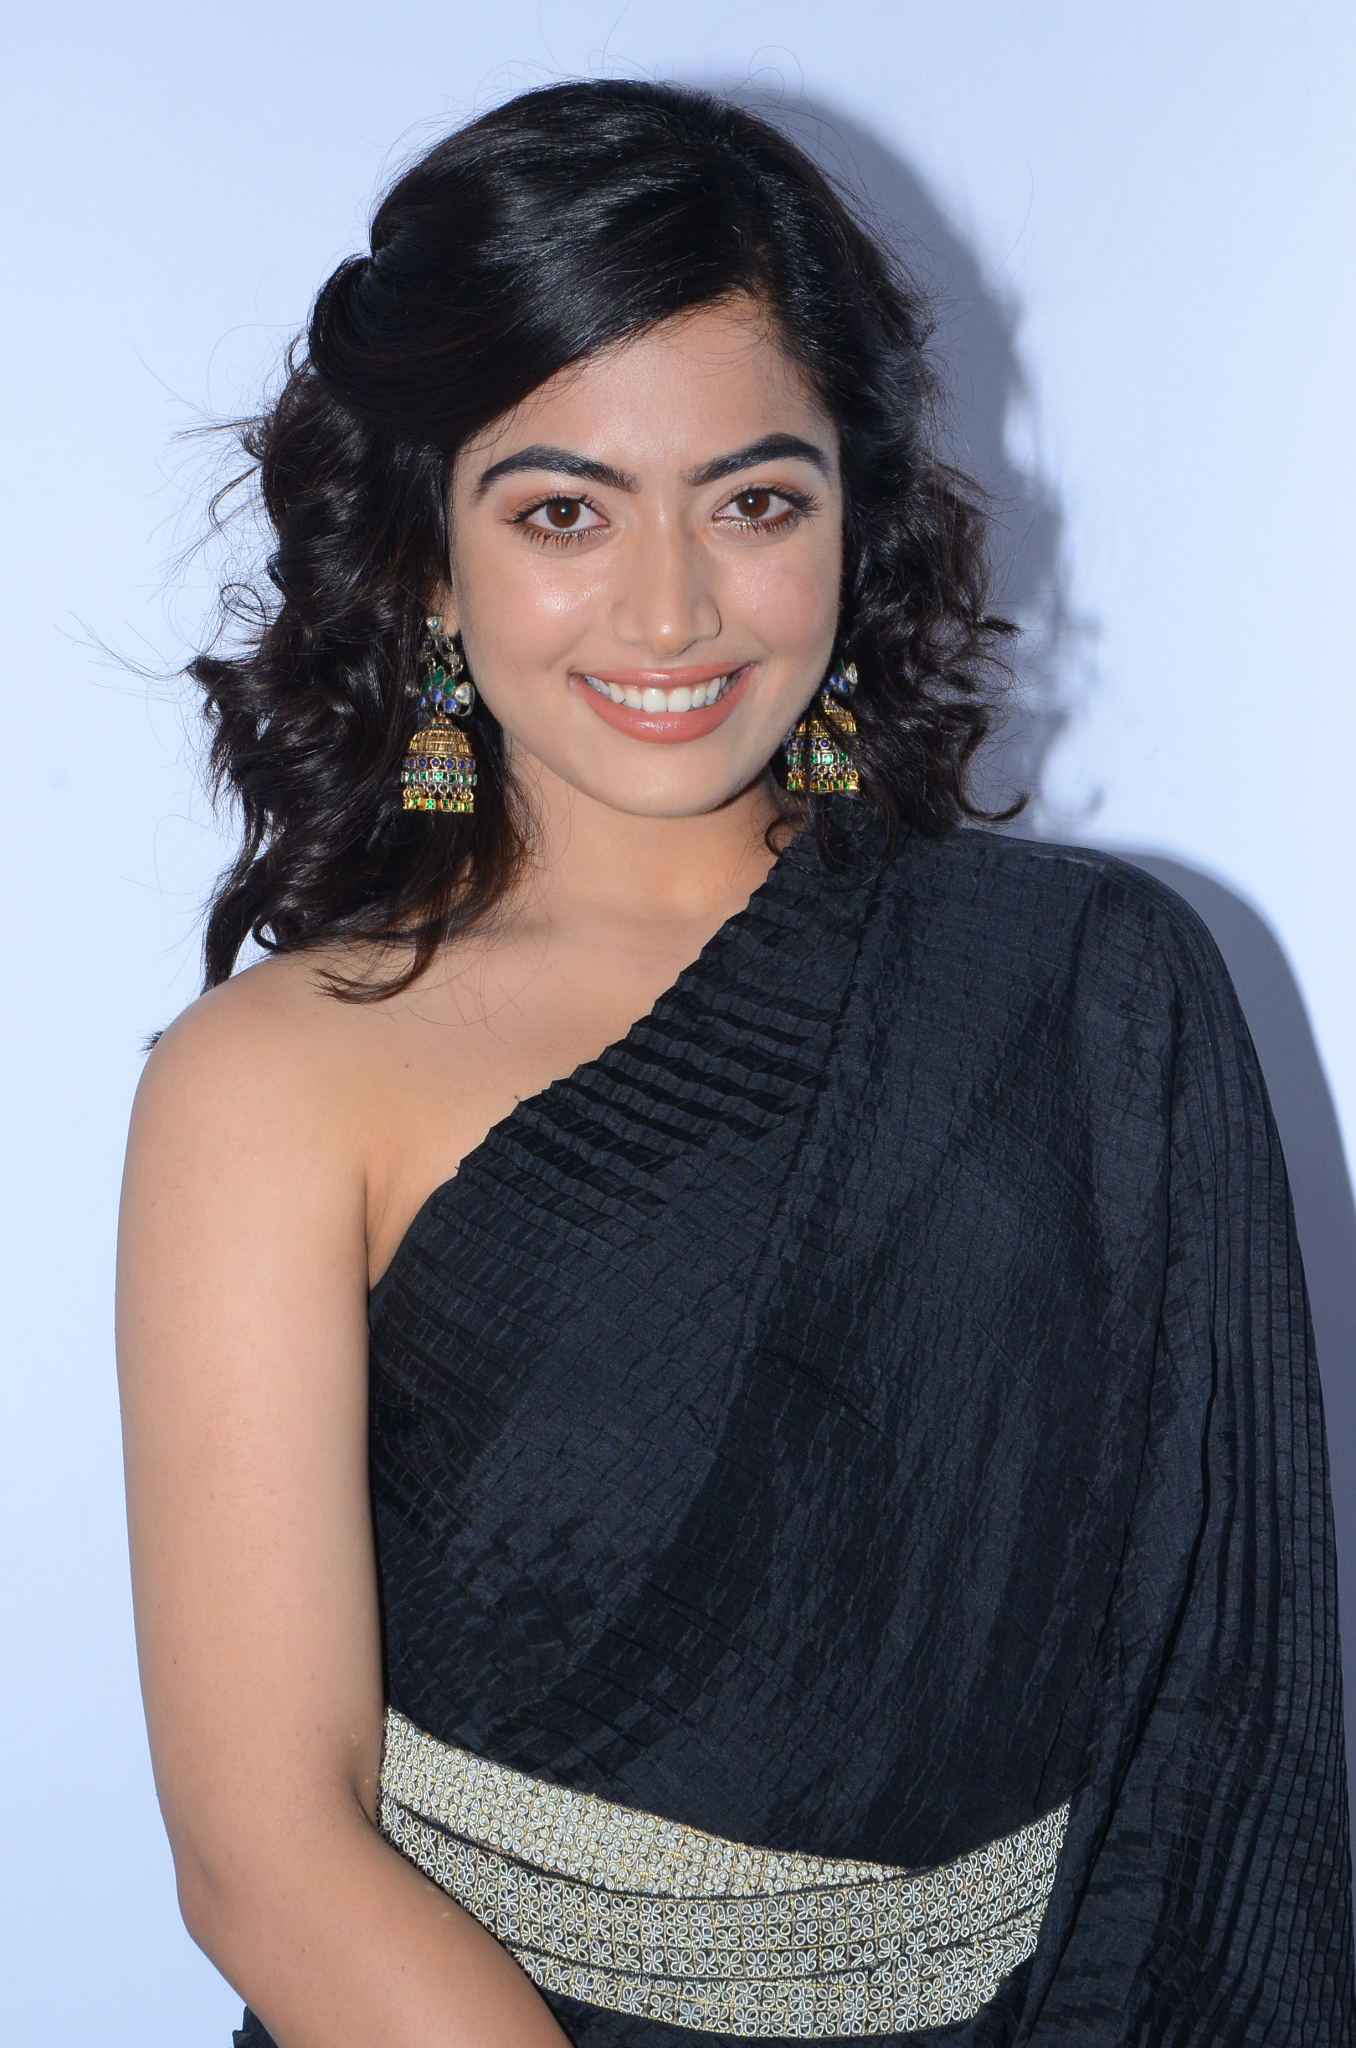 Oh Baby Film Rashmika Mandanna Photos Devadas Audio Launch | Teluguodu